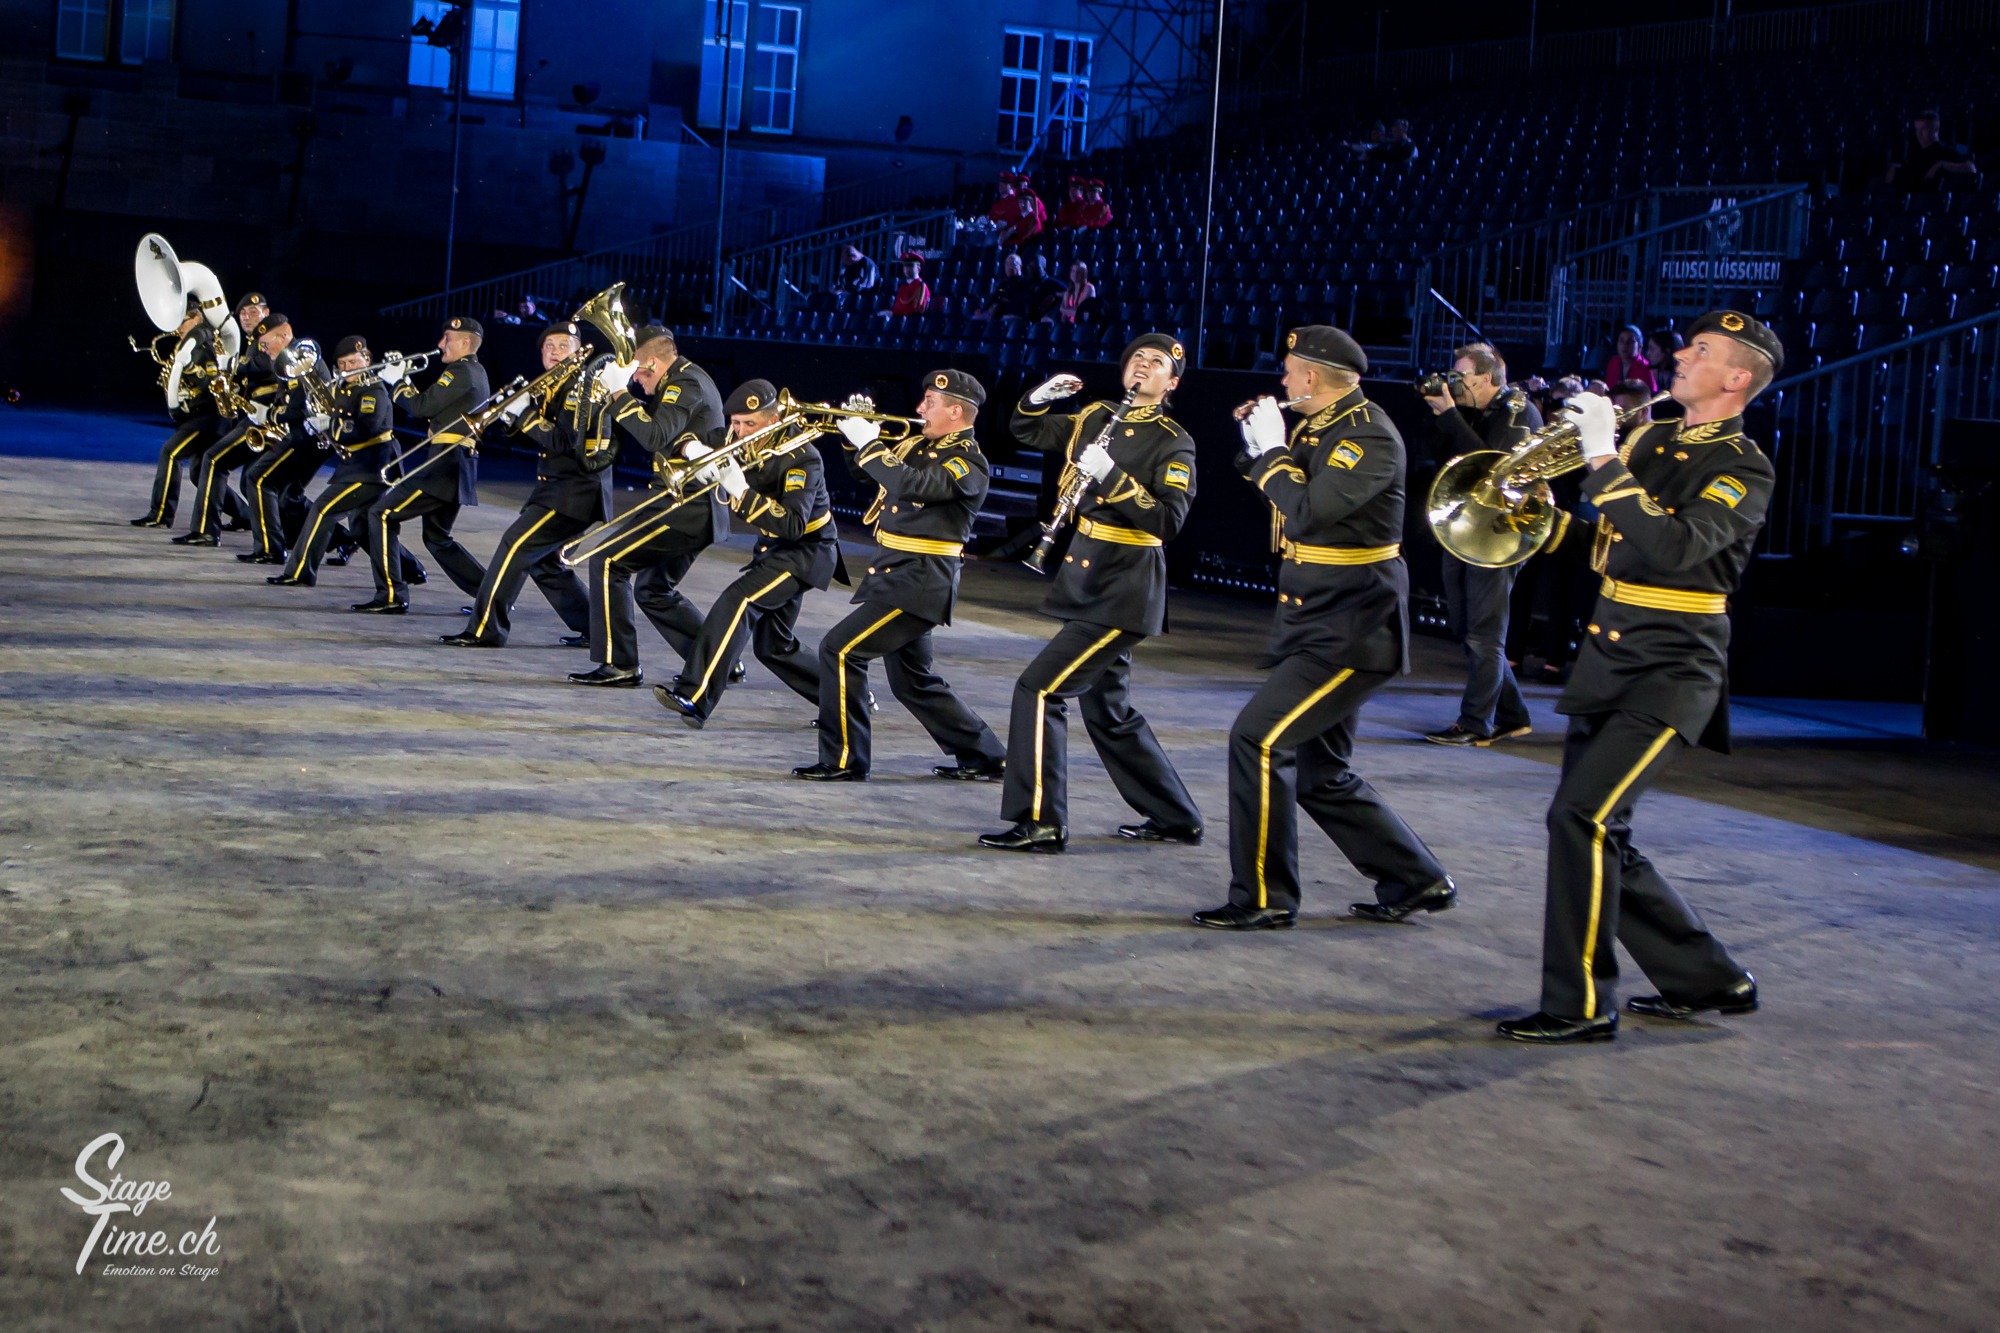 Basel_Tattoo_2018-85